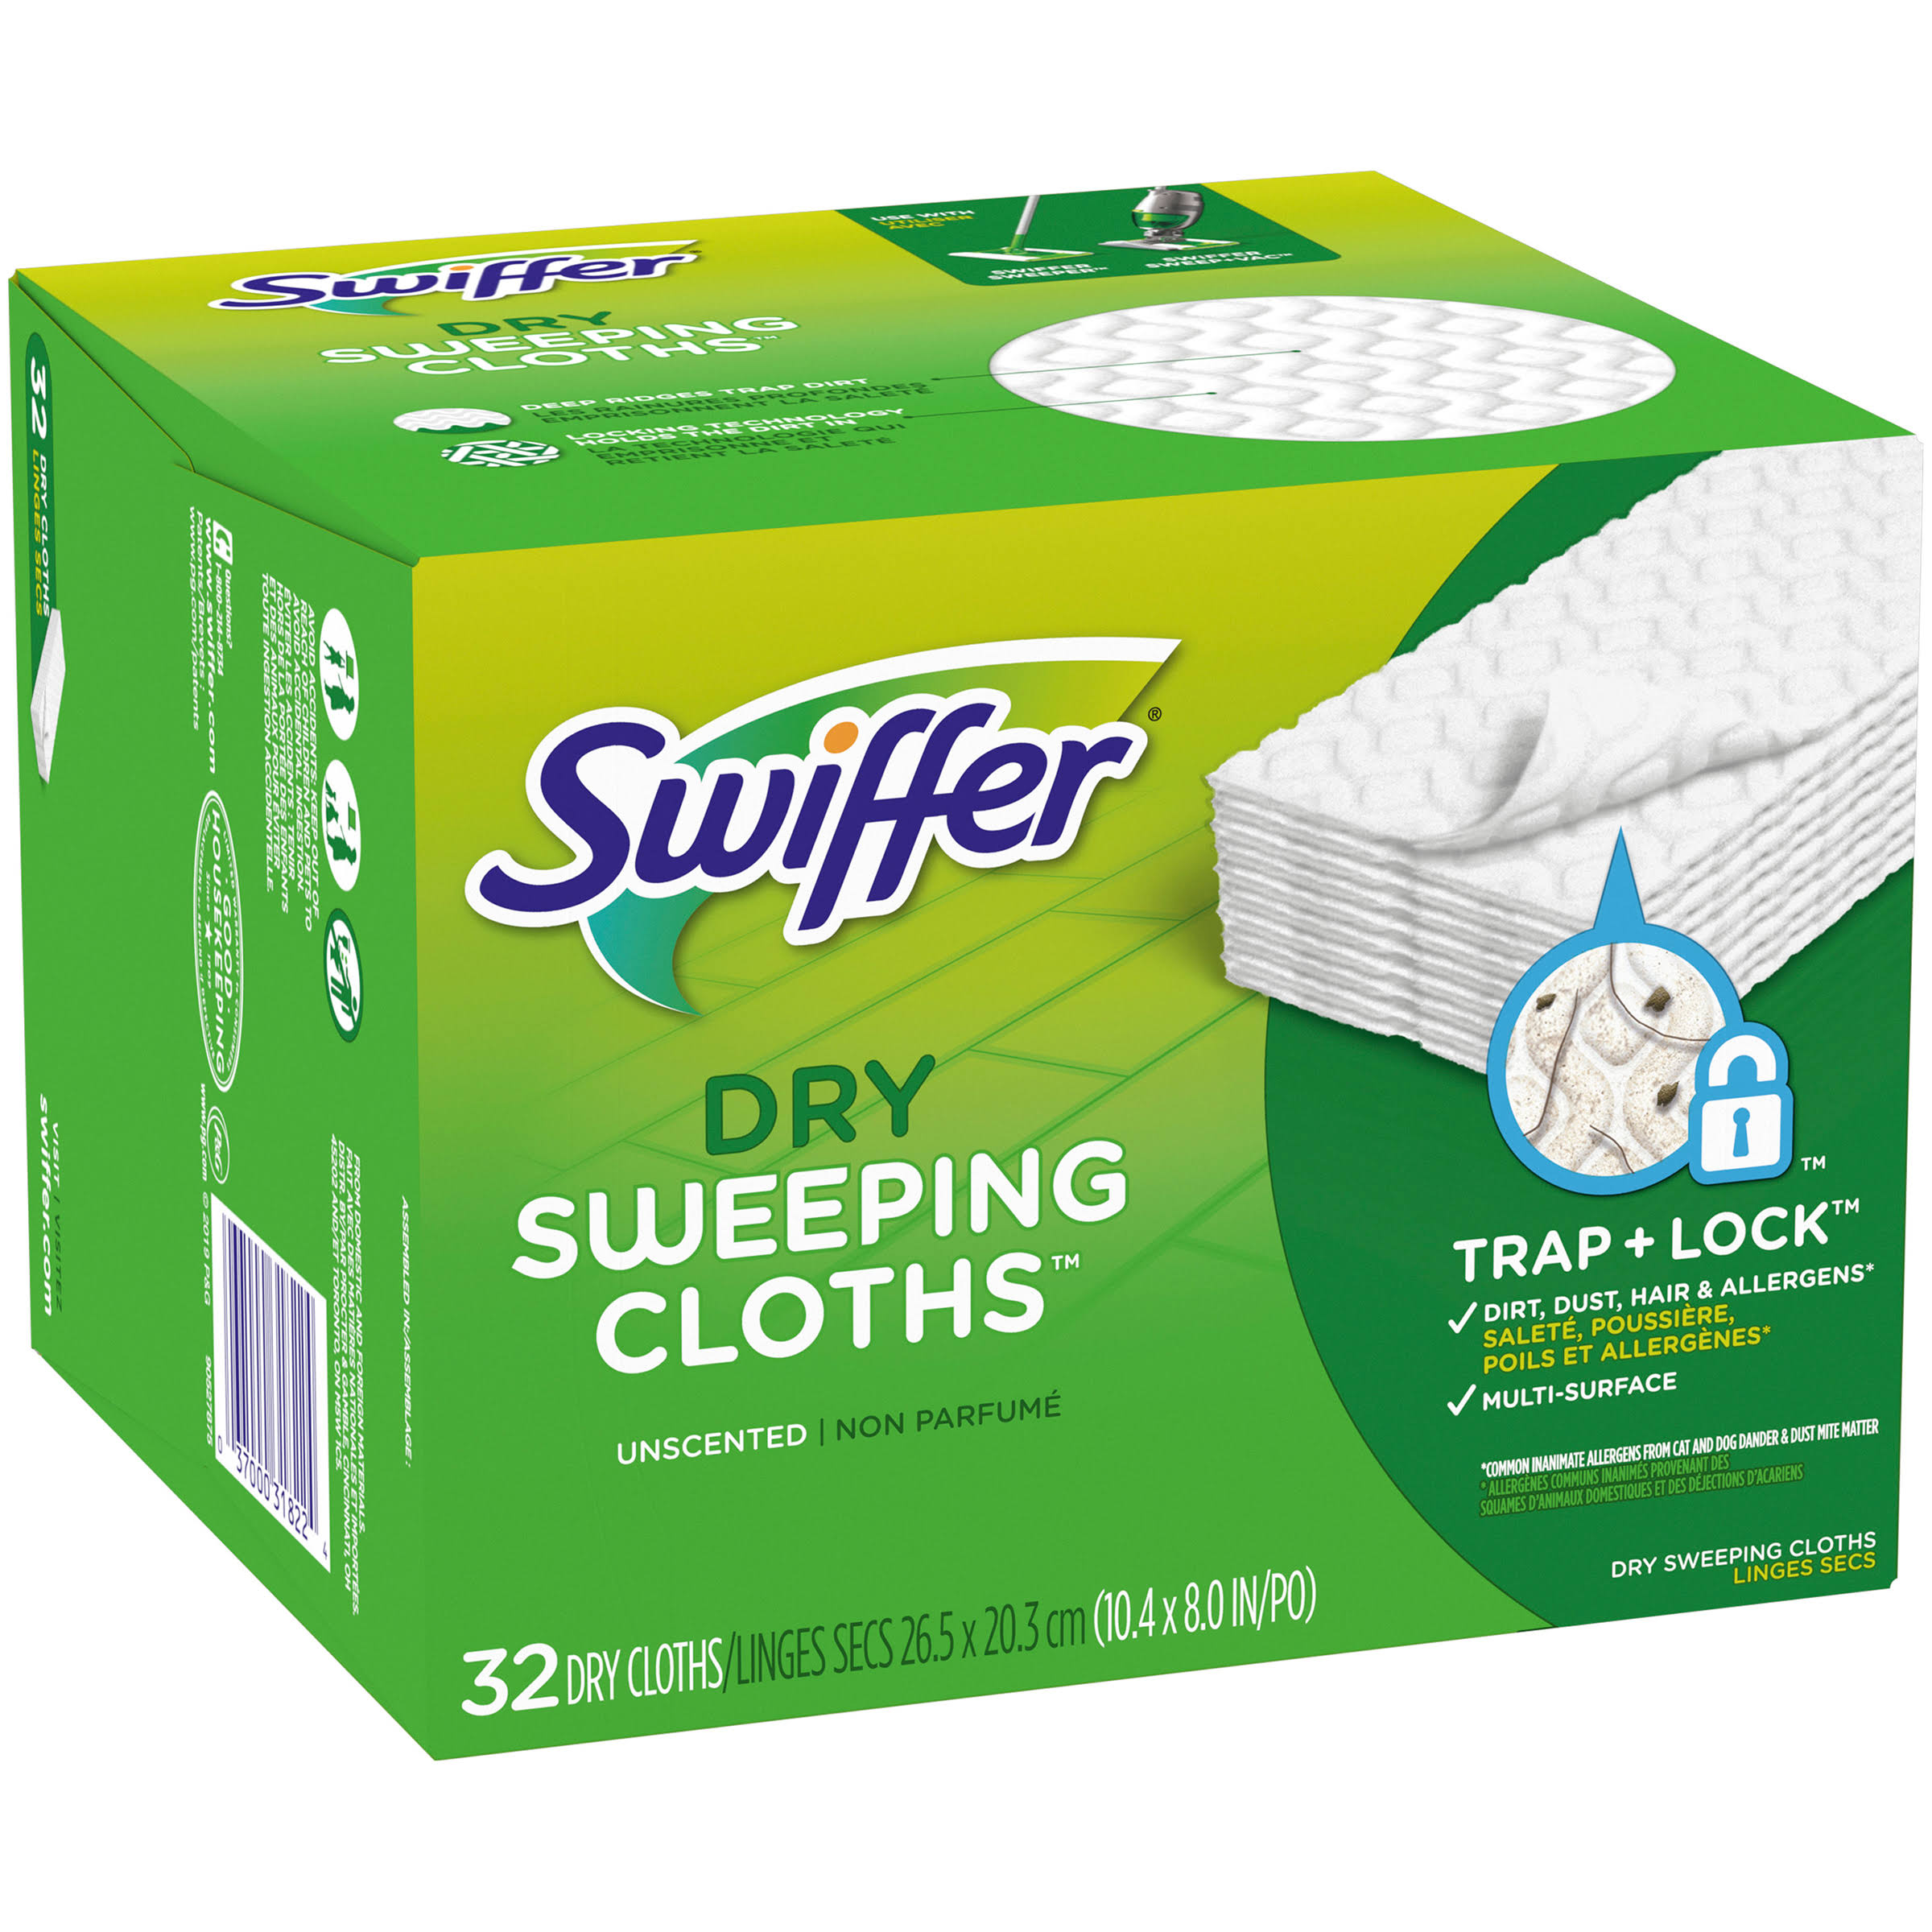 Swiffer Sweeper Dry Sweeping Refills - 32 Dry-Sweeping Cloths